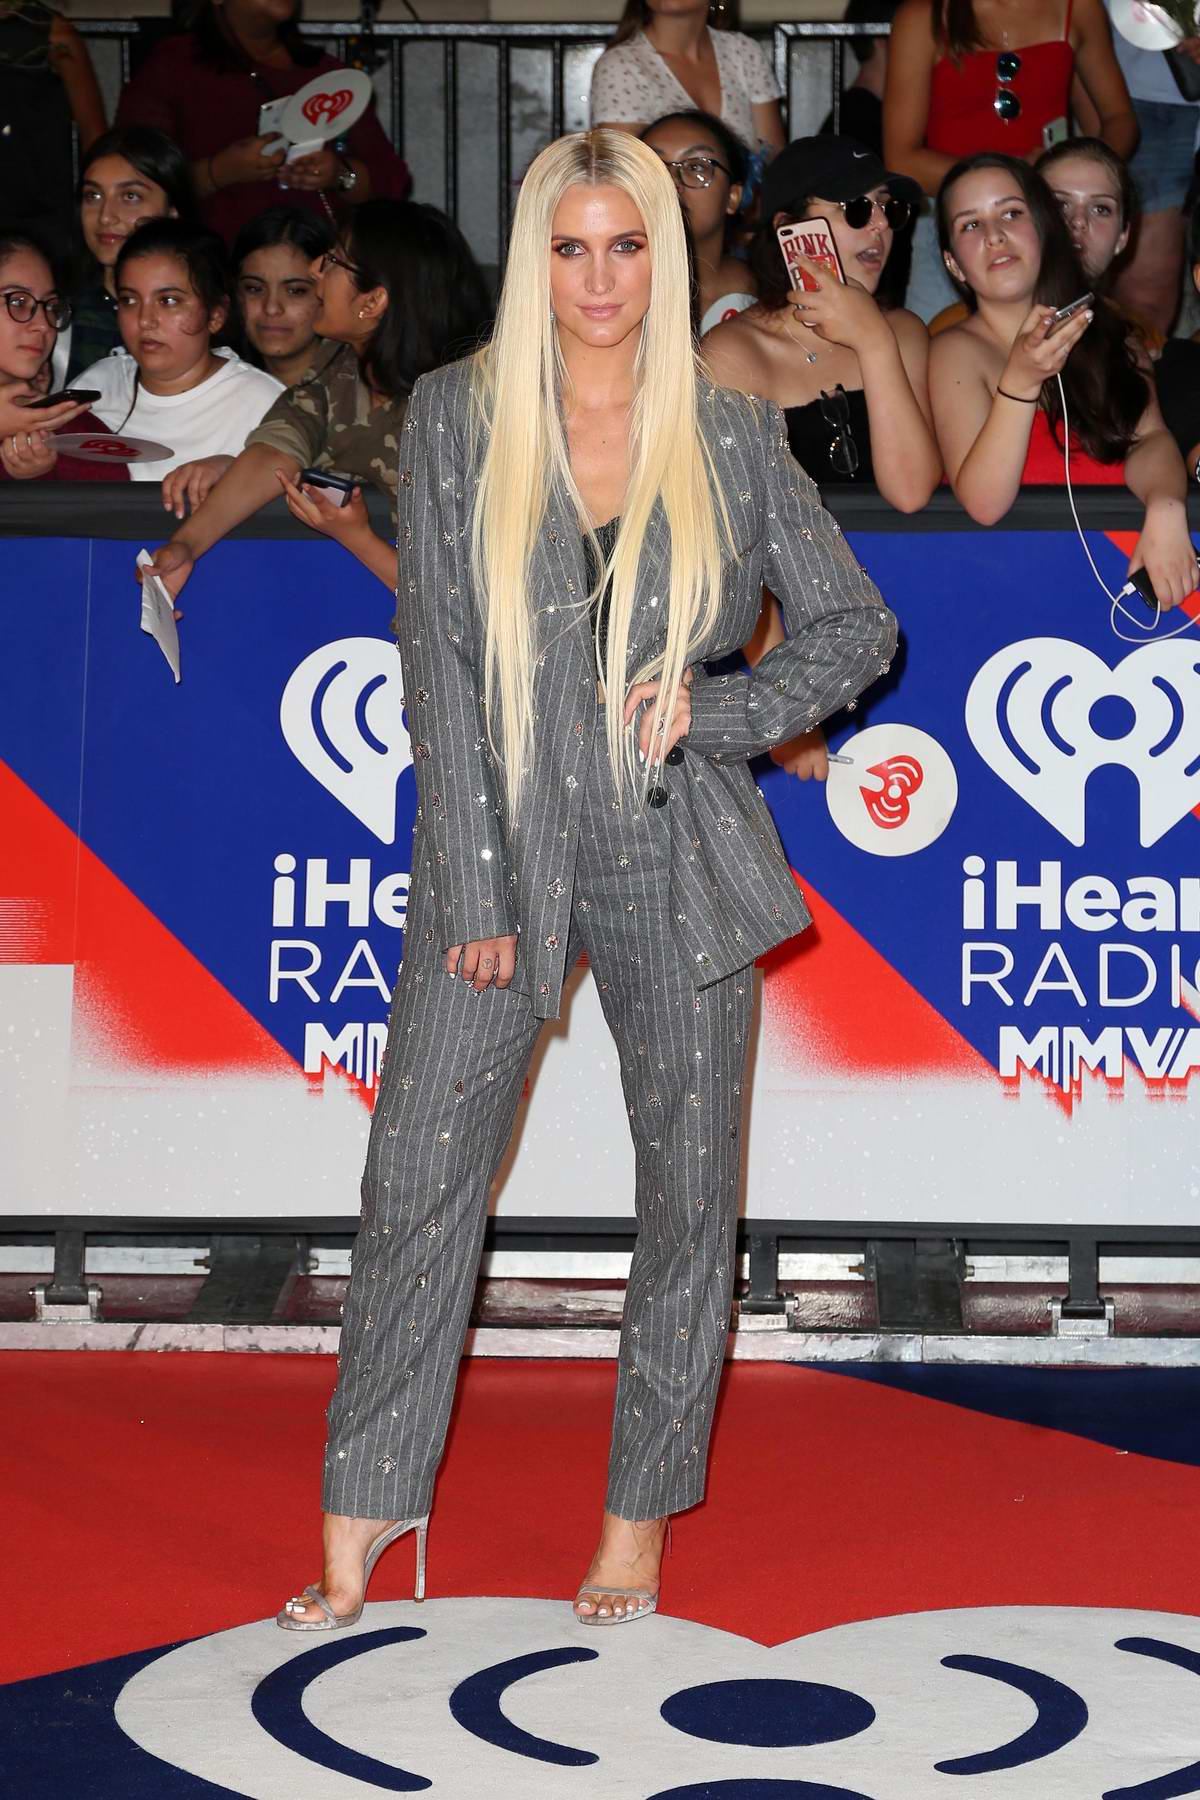 Ashlee Simpson attends 2018 iHeartRadio MuchMusic Video Awards (MMVA 2018) at MuchMusic HQ in Toronto, Canada